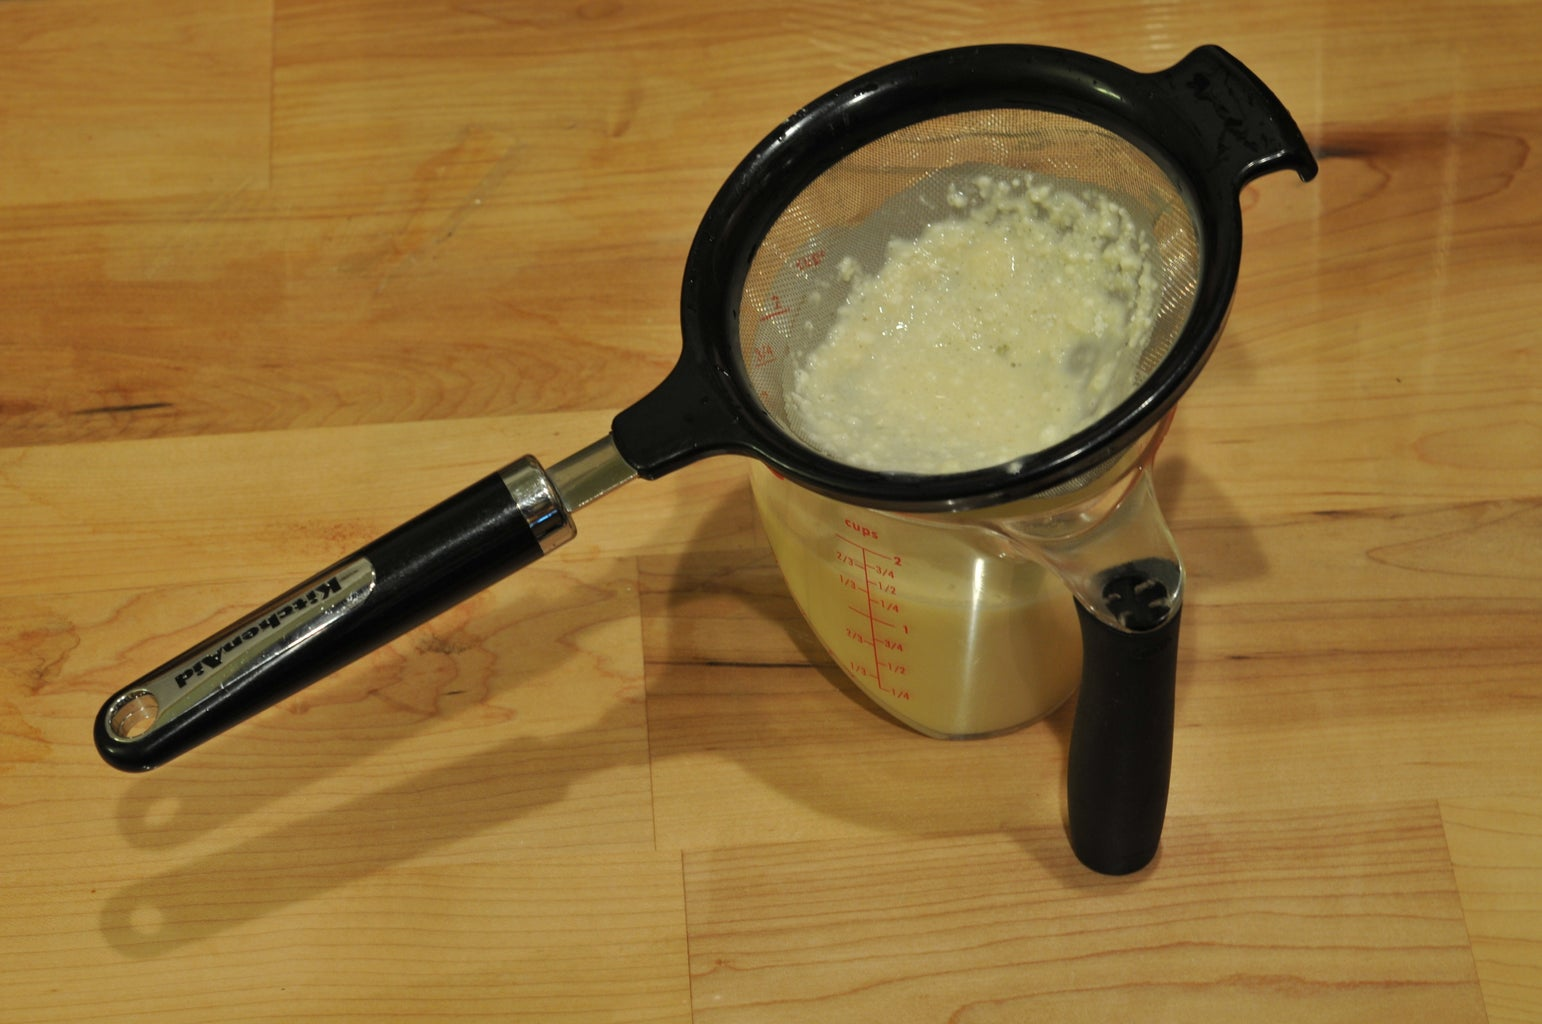 Strain the Batter Into the Measuring Cup